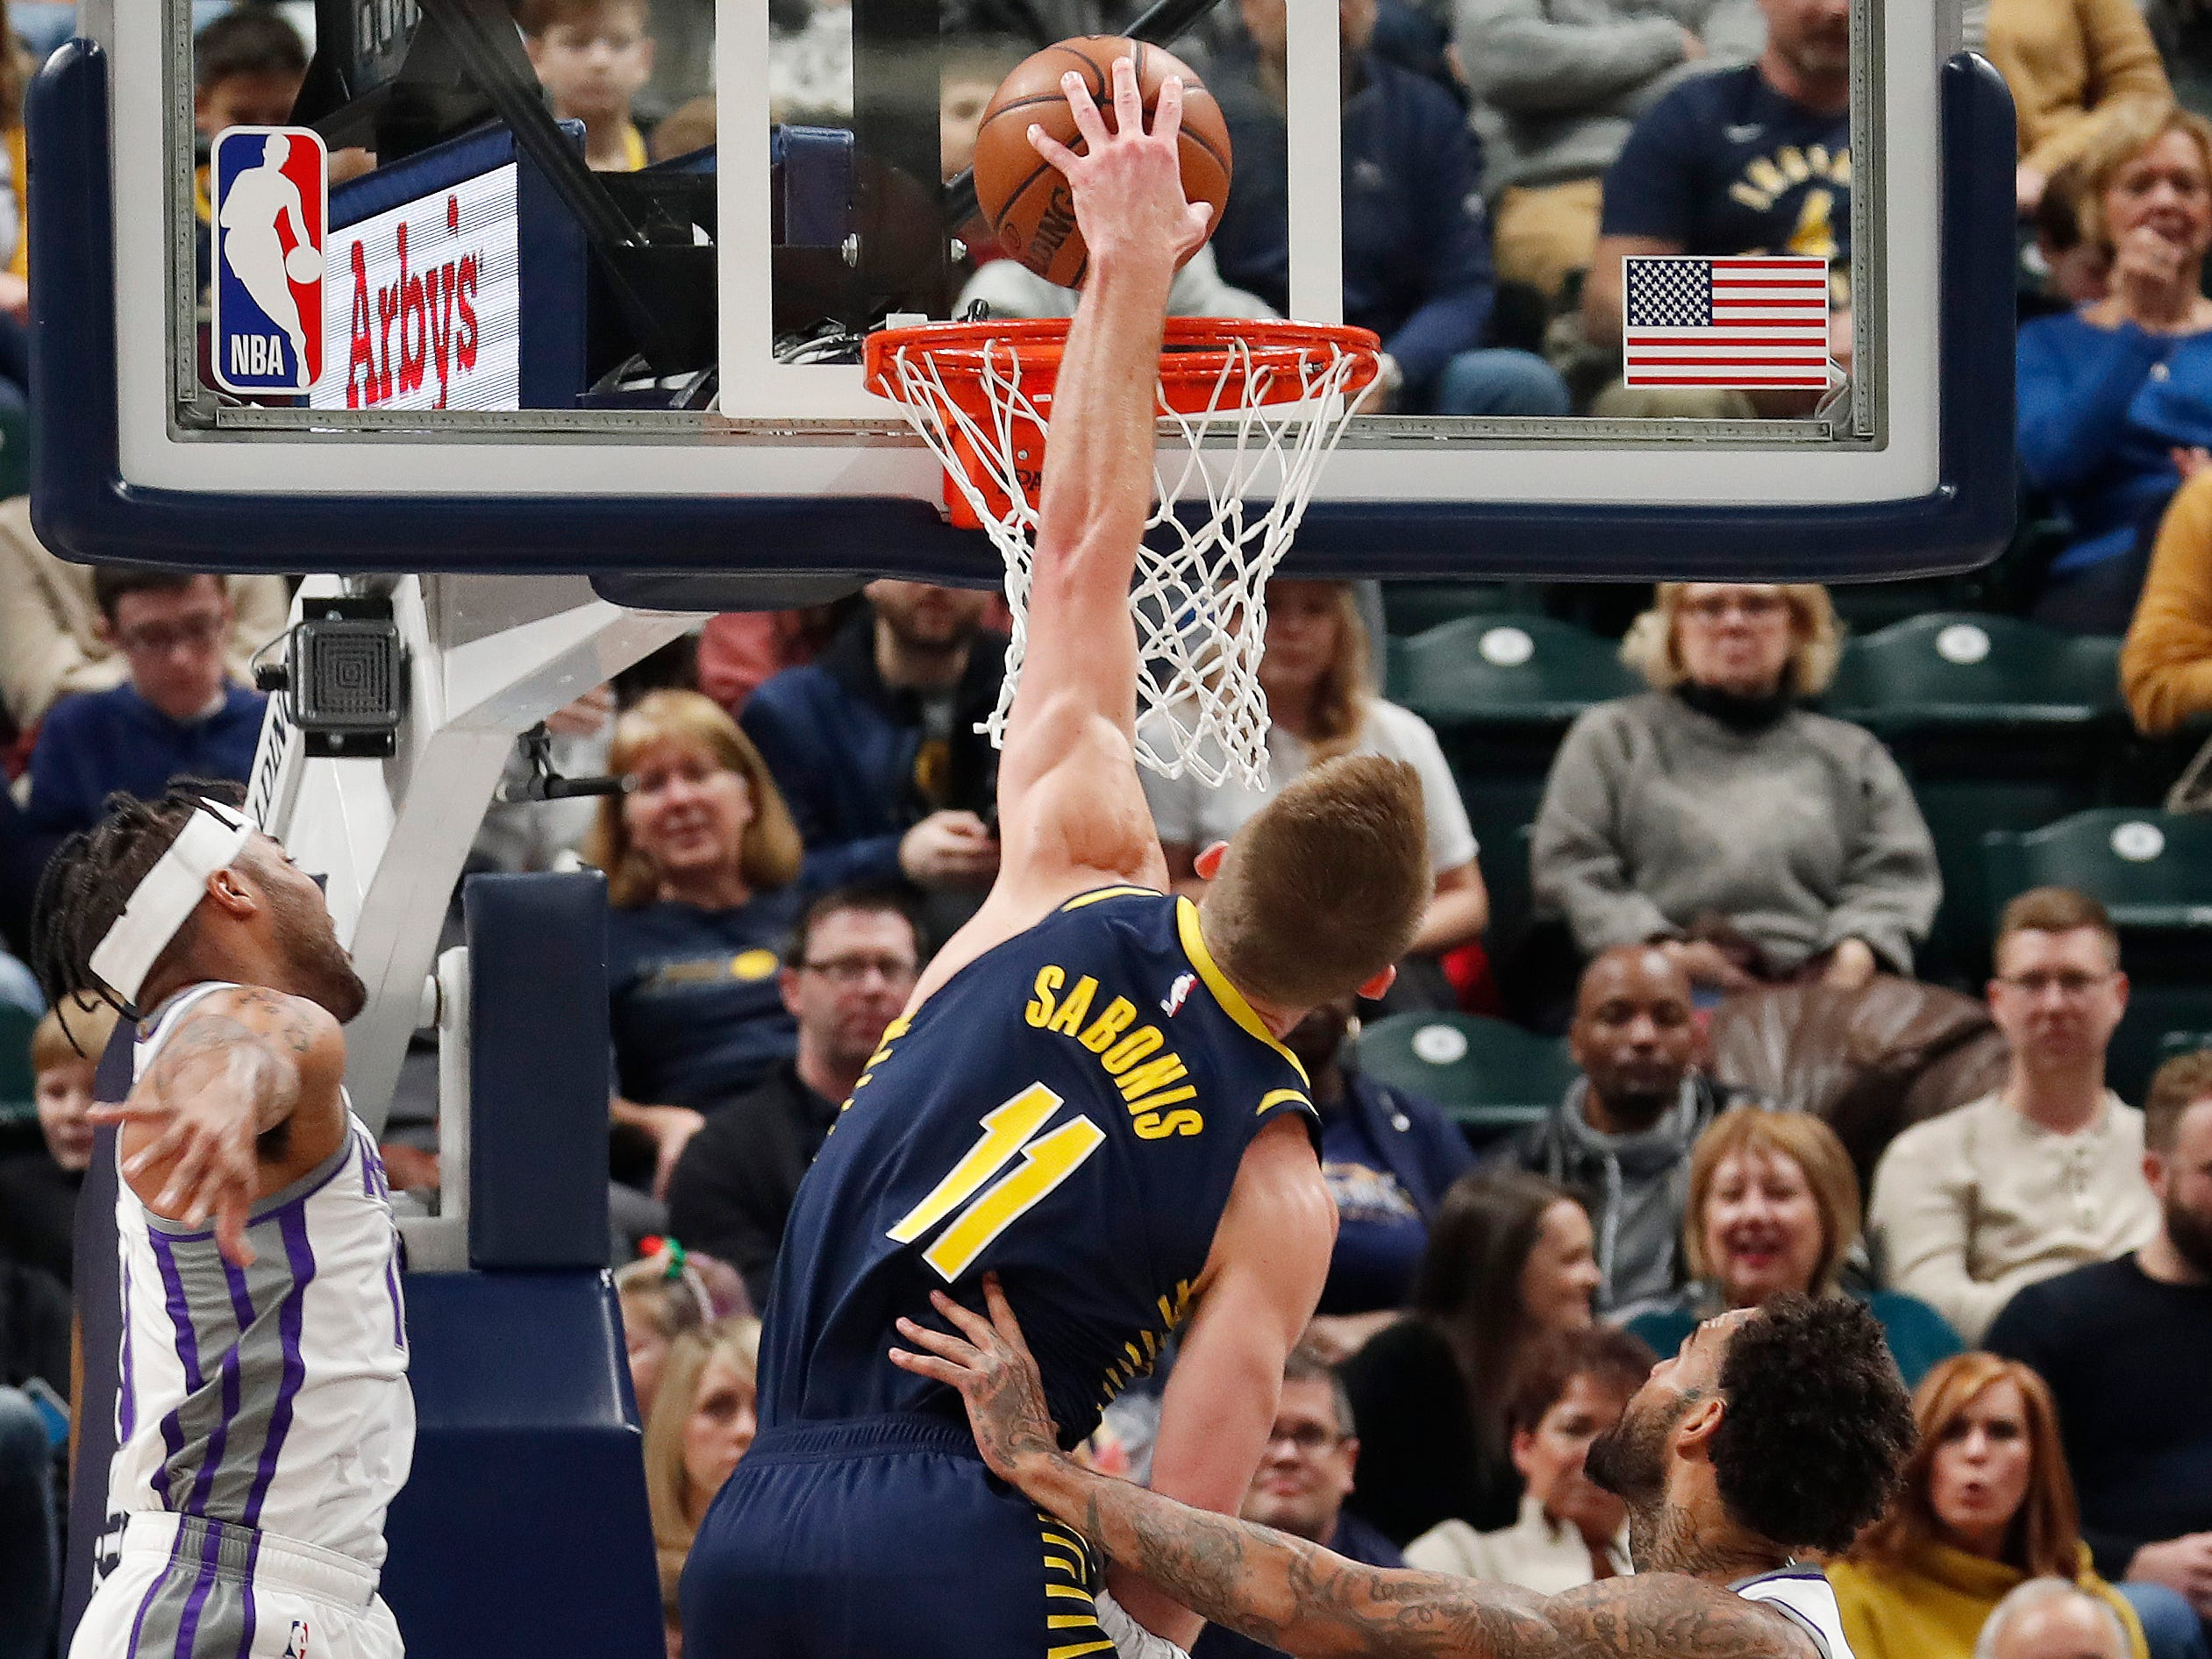 Dec. 8: Pacers forward Domantas Sabonis (11) throws down a ferocious one-handed slam between a pair of Kings defenders during the first half in Indianapolis.